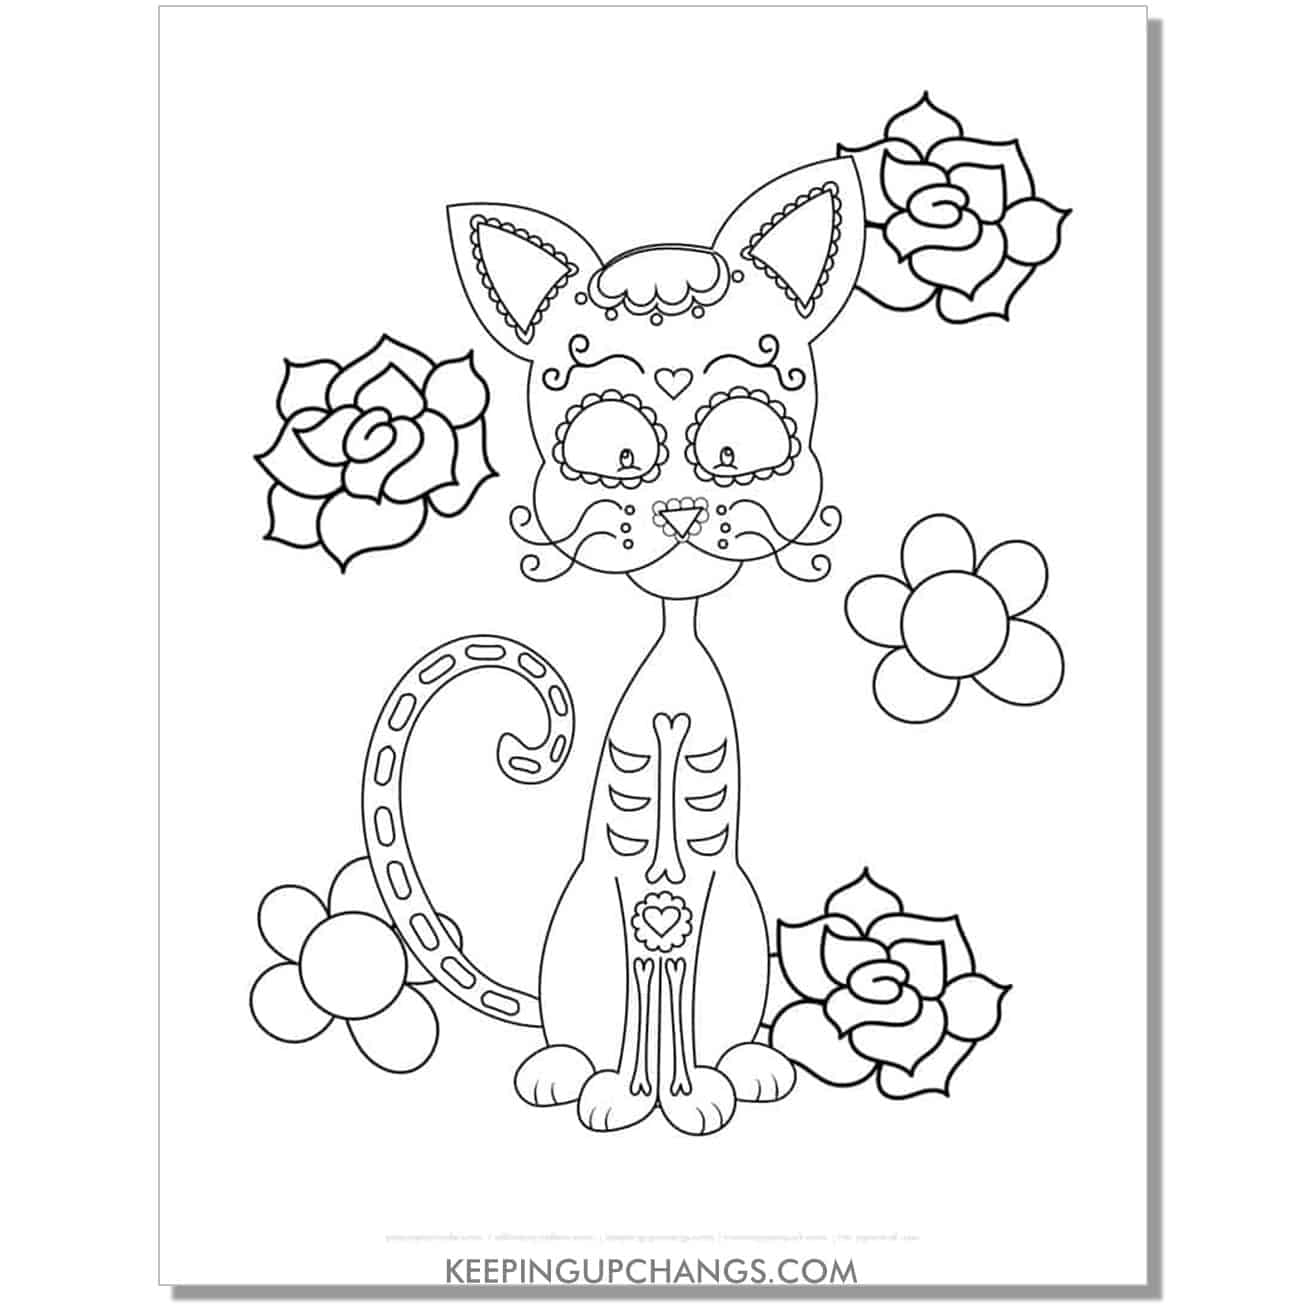 skinny halloween cat with day of the dead face painting and roses coloring page.